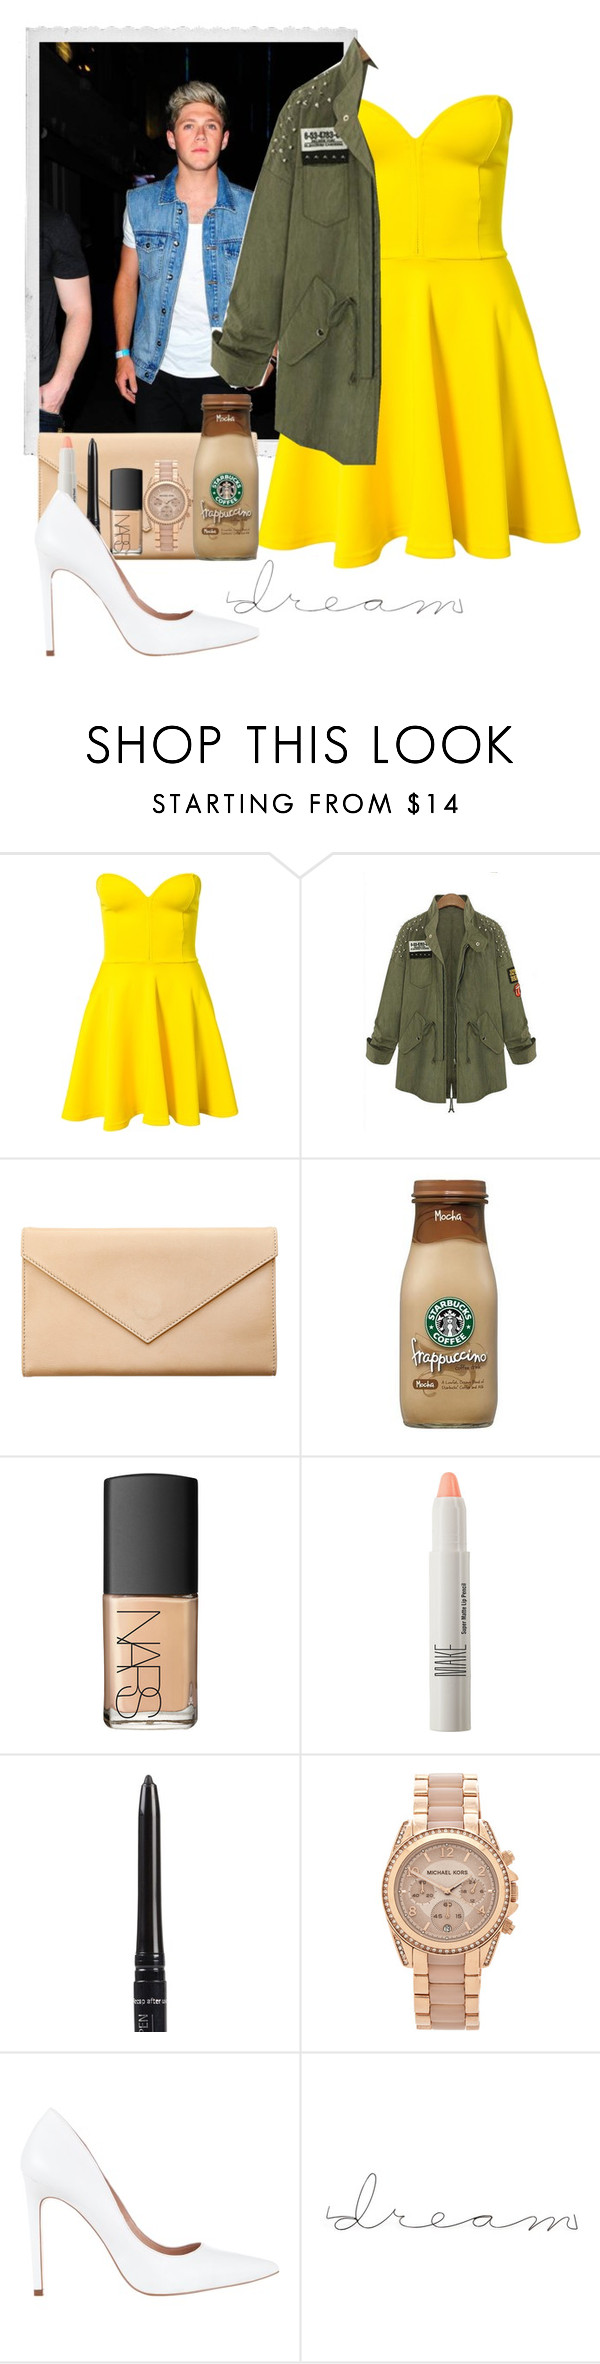 """dinner with niall"" by jahzariah-allen ❤ liked on Polyvore featuring Polaroid, Club L, Carré Royal, NARS Cosmetics, Make, Isadora, Michael Kors and Diavolina"